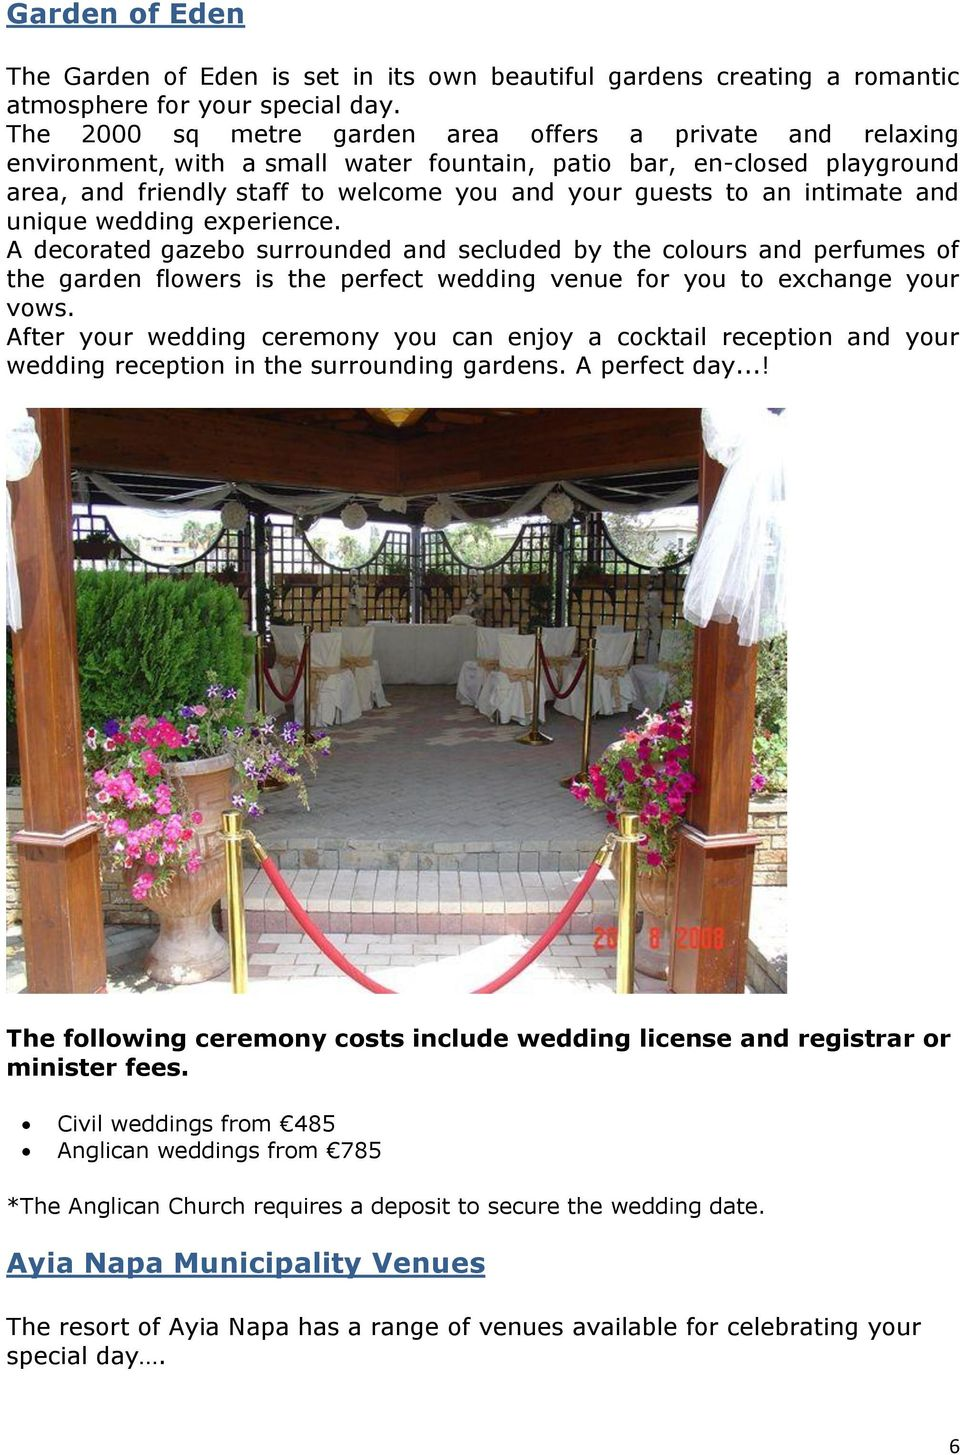 intimate and unique wedding experience. A decorated gazebo surrounded and secluded by the colours and perfumes of the garden flowers is the perfect wedding venue for you to exchange your vows.